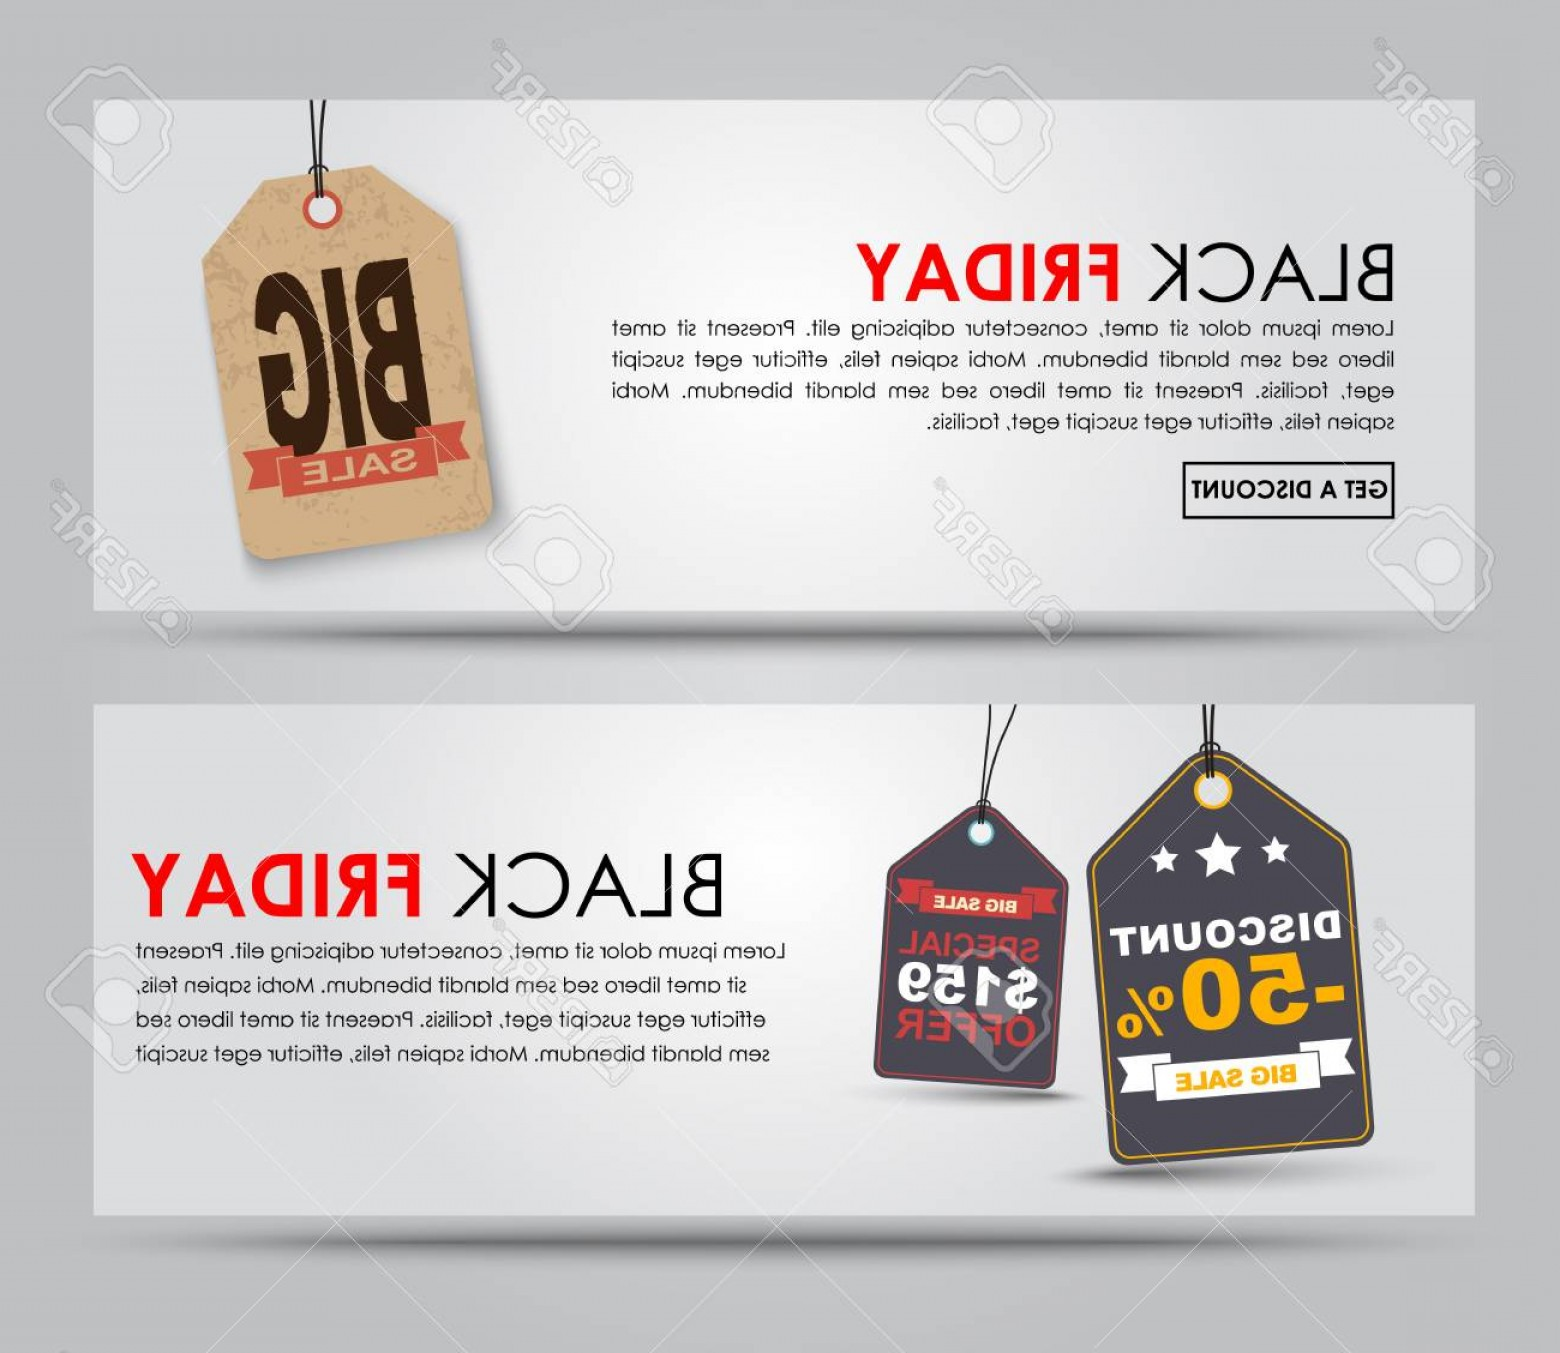 Vector Banner And Sell: Photostock Vector Banner Design Black Friday For Sale On A White Background With Tags Vector Illustration Set